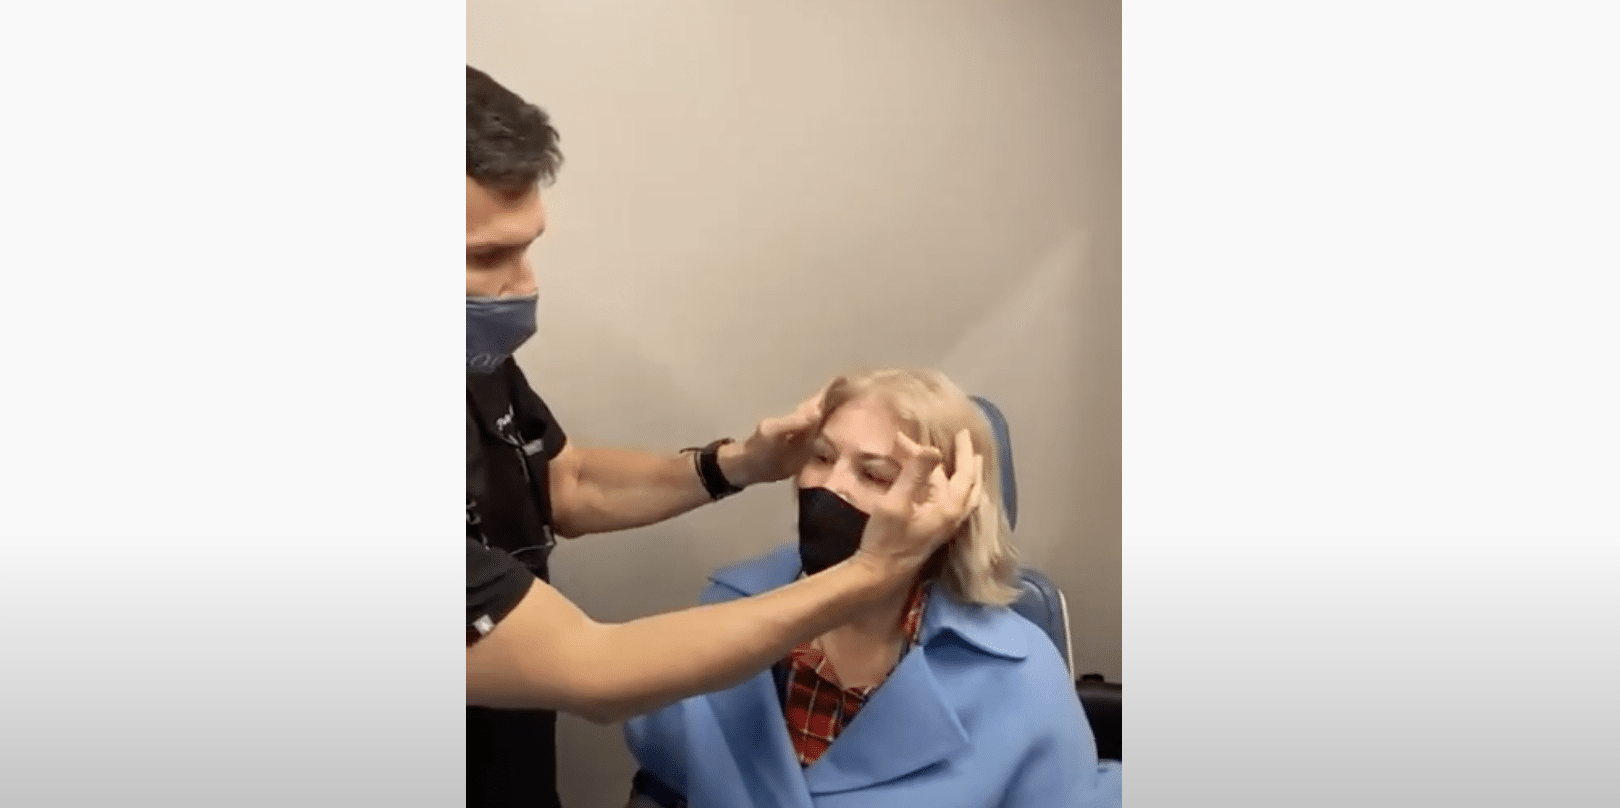 Brow Lift Patient Regains Youthful Appearance 2 Months After Surgery With Dr. Philip Miller